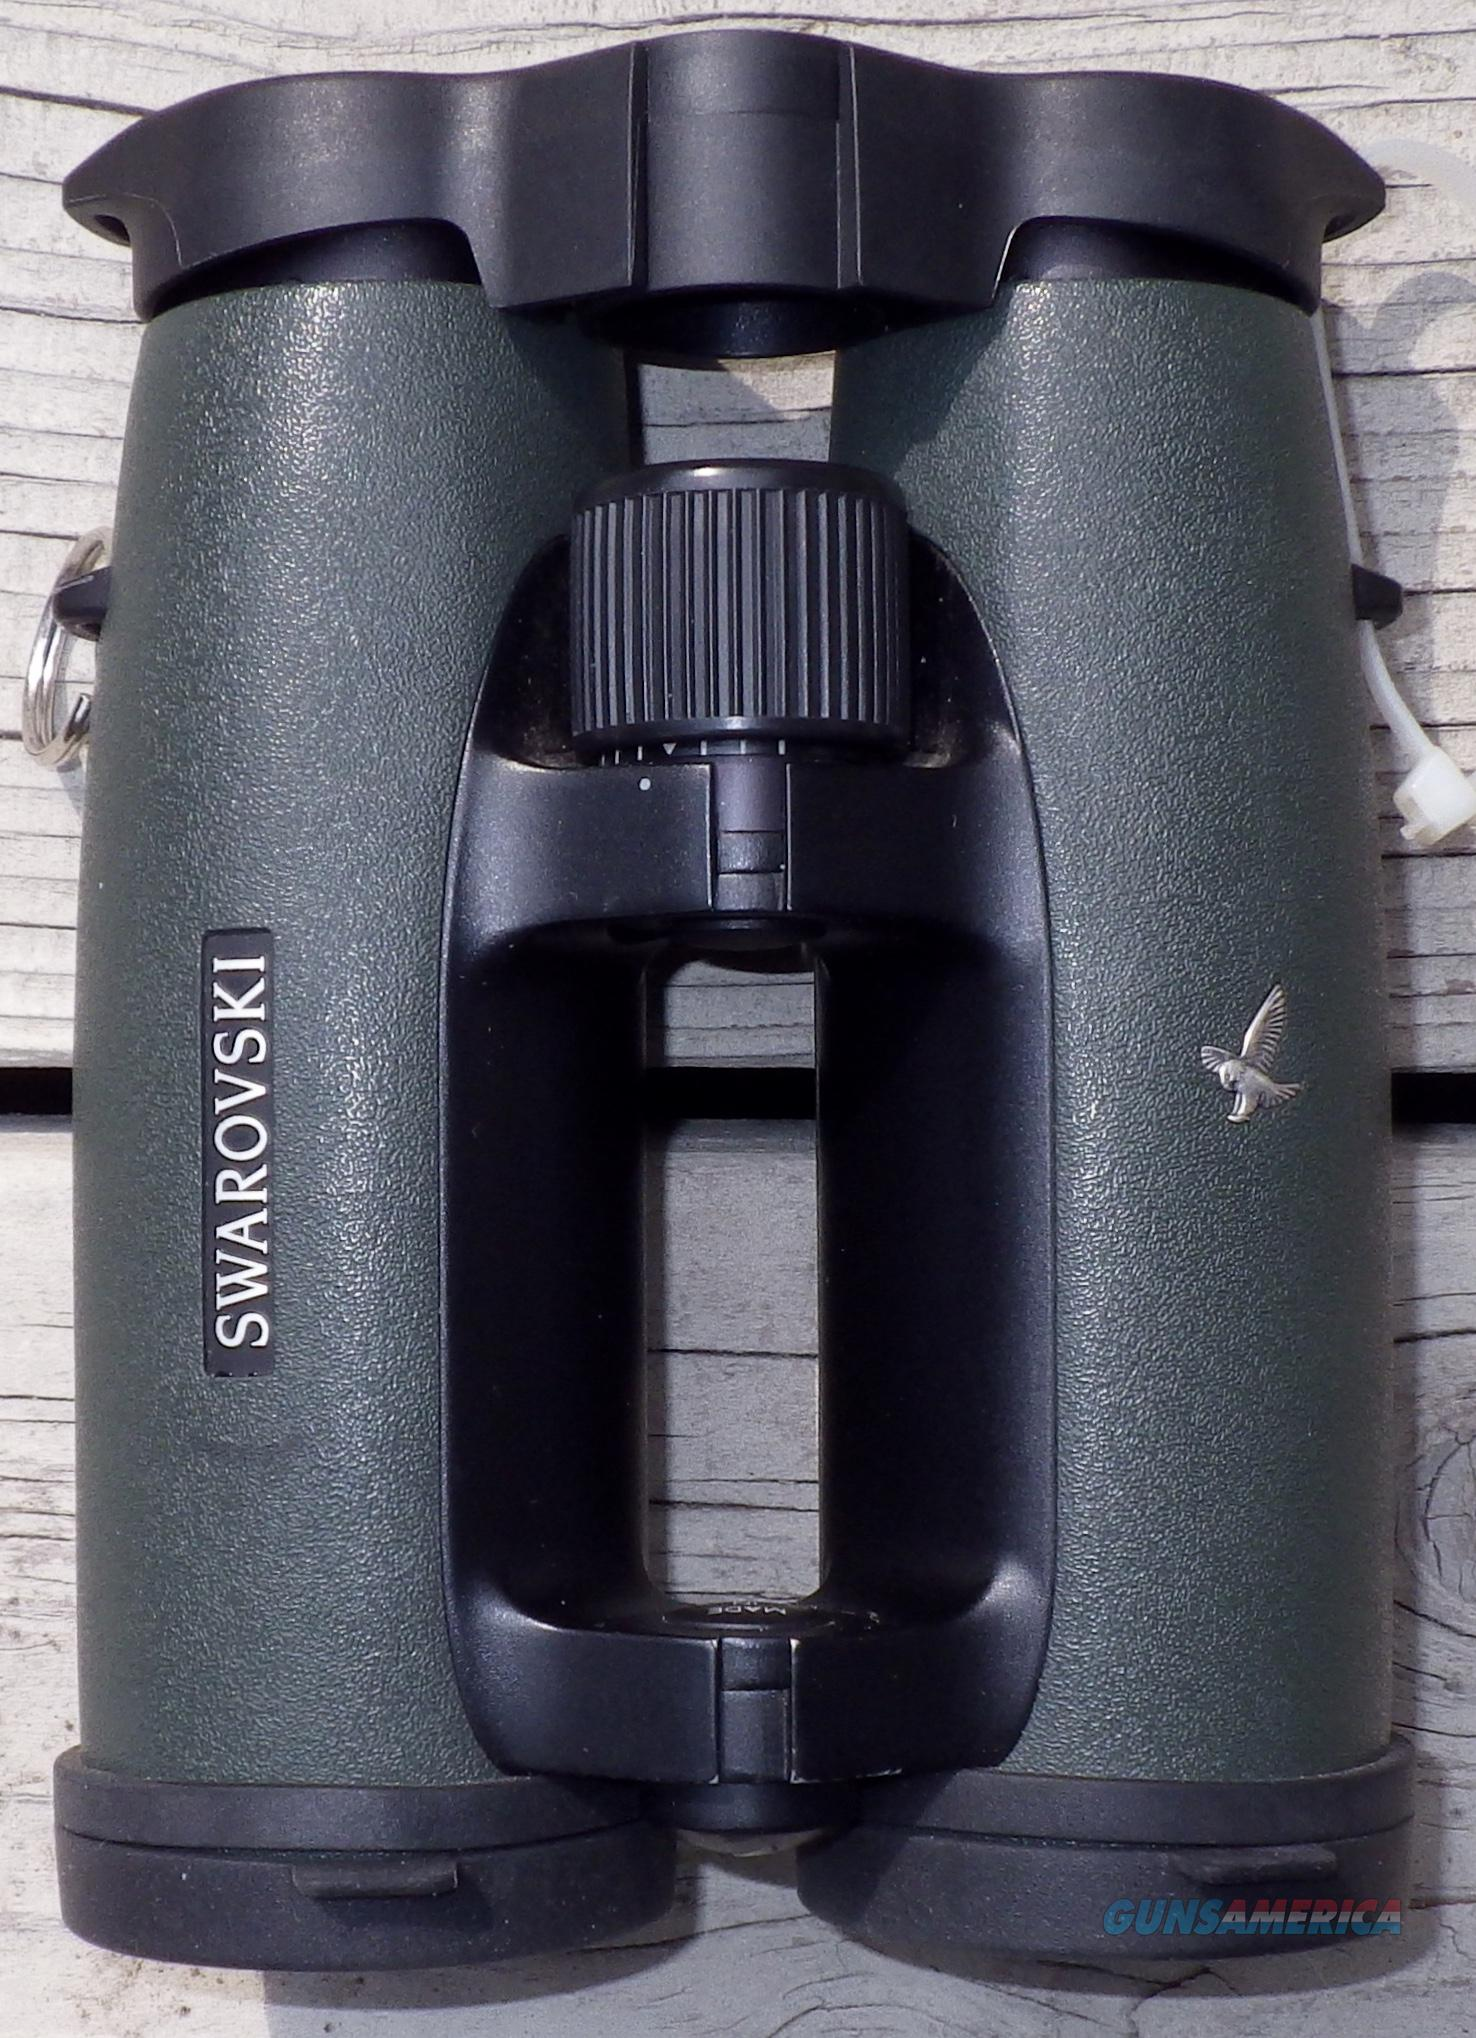 Swarovski 10-42 EL binoculars  Non-Guns > Scopes/Mounts/Rings & Optics > Non-Scope Optics > Binoculars